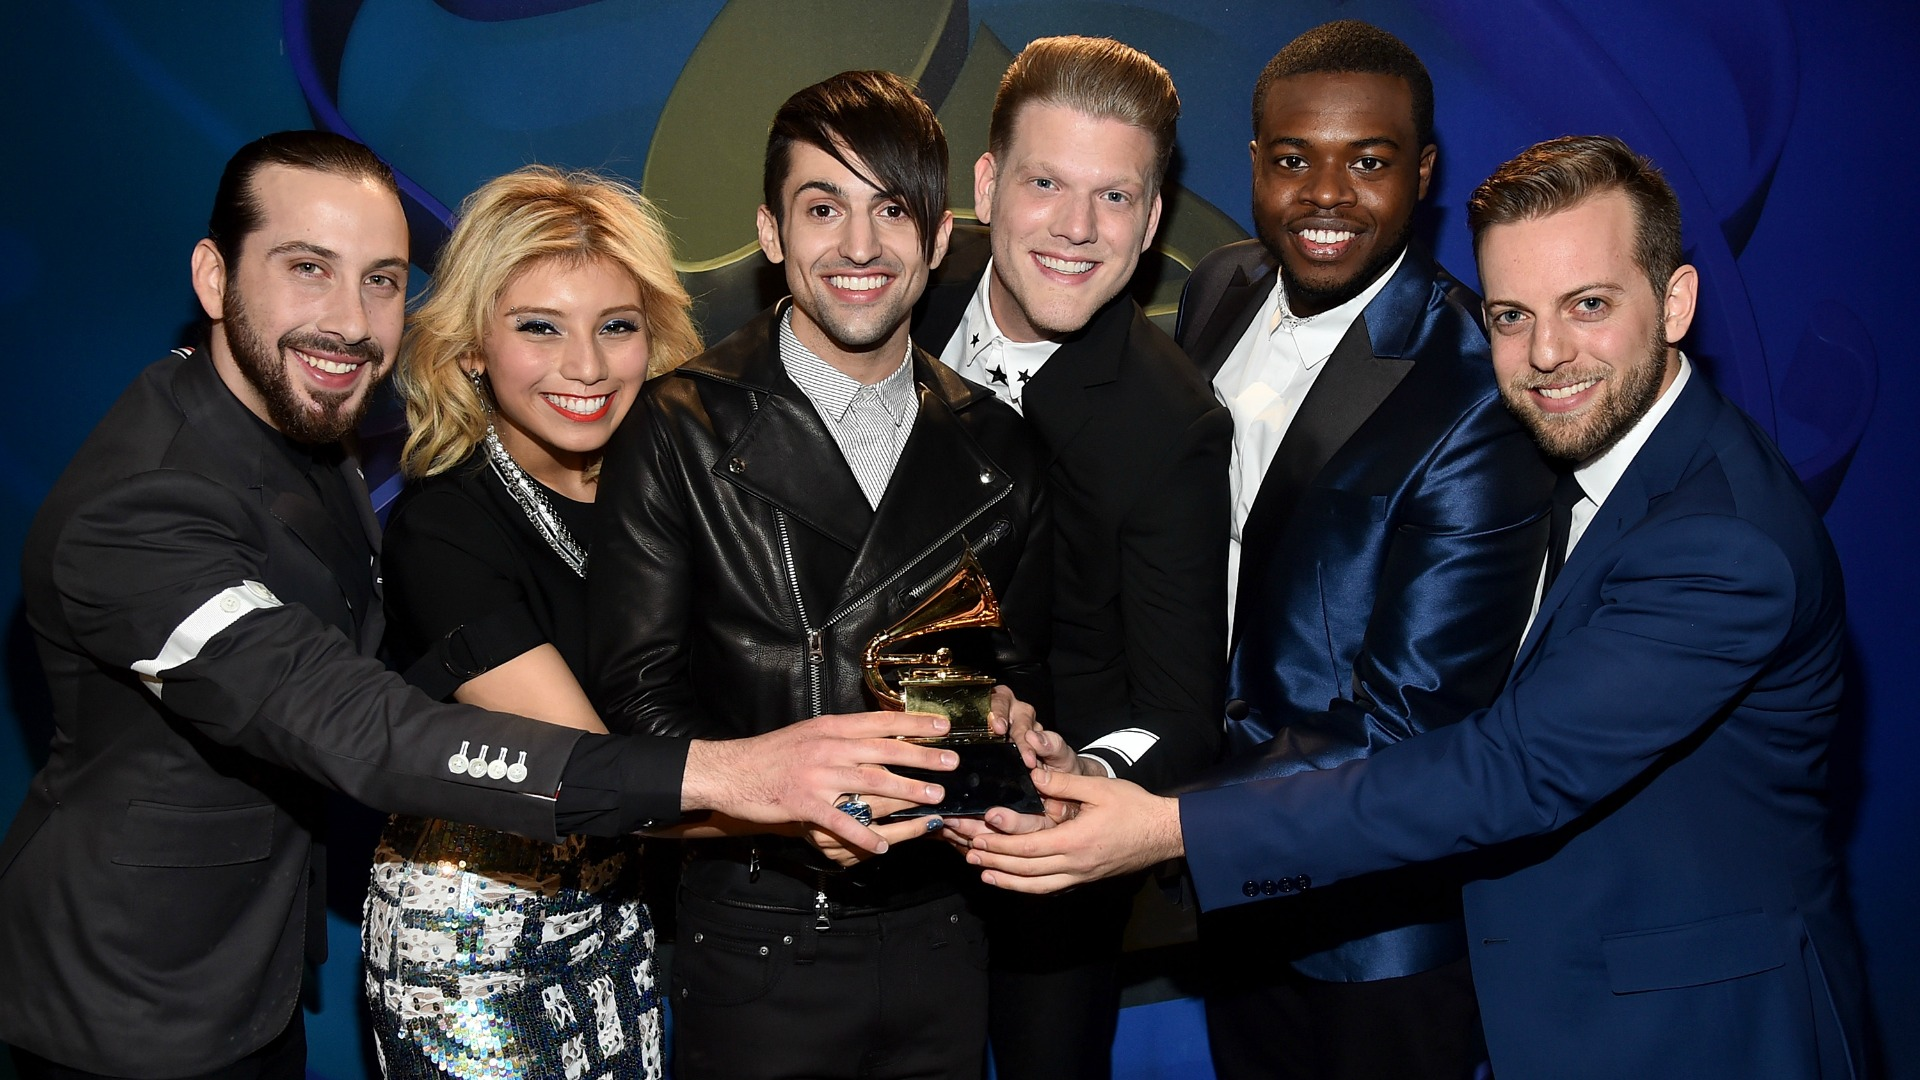 How to Become the Pentatonix Vocal Arranger - Ben Bram — Don